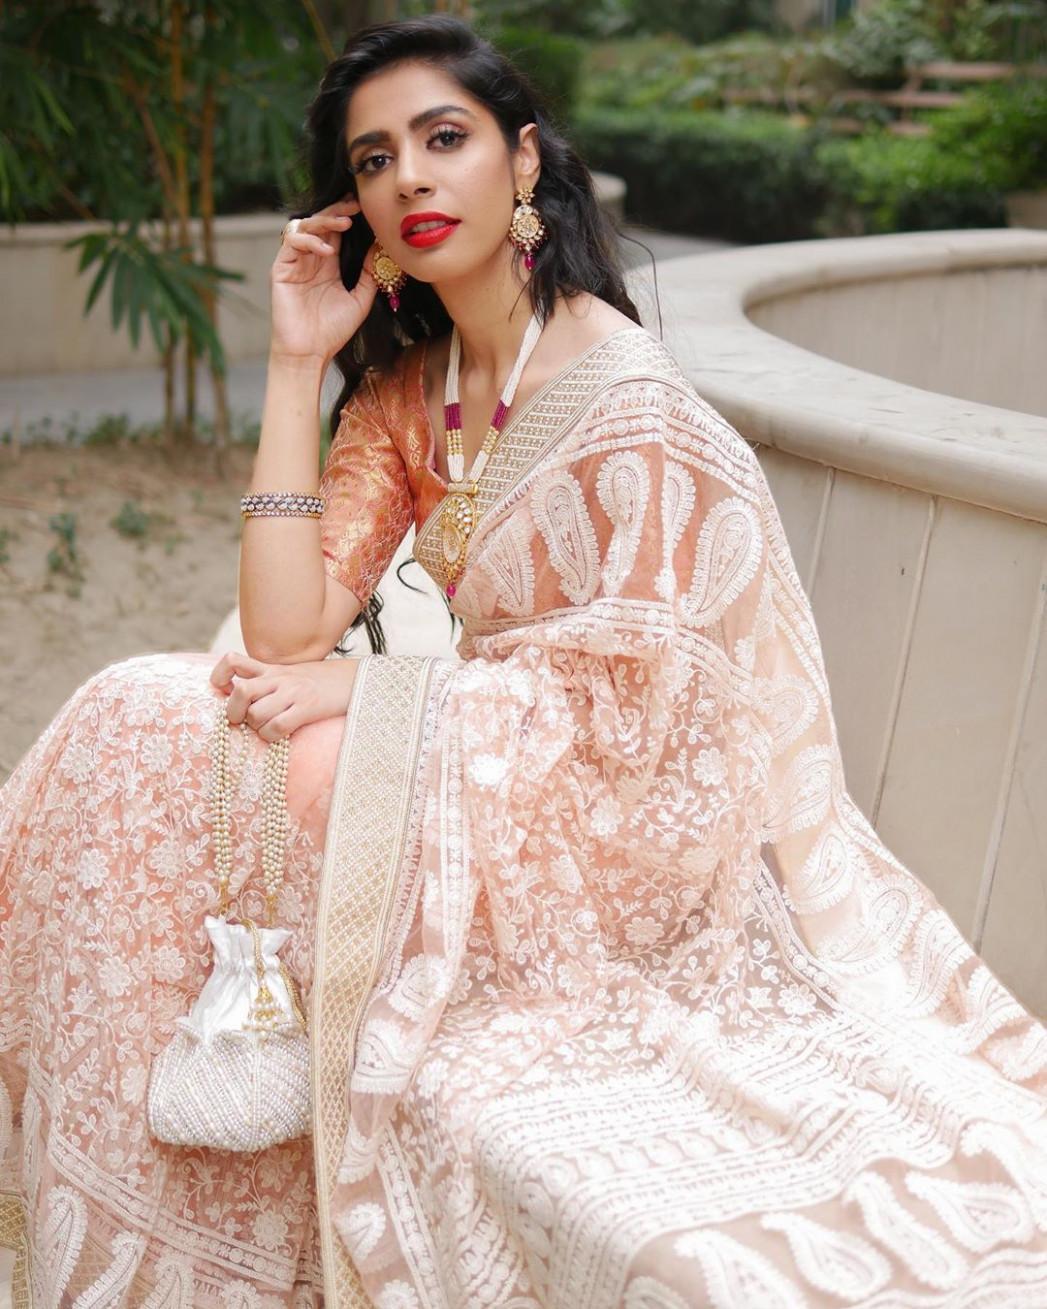 How To Look Stellar In Classic Chikankari Saree